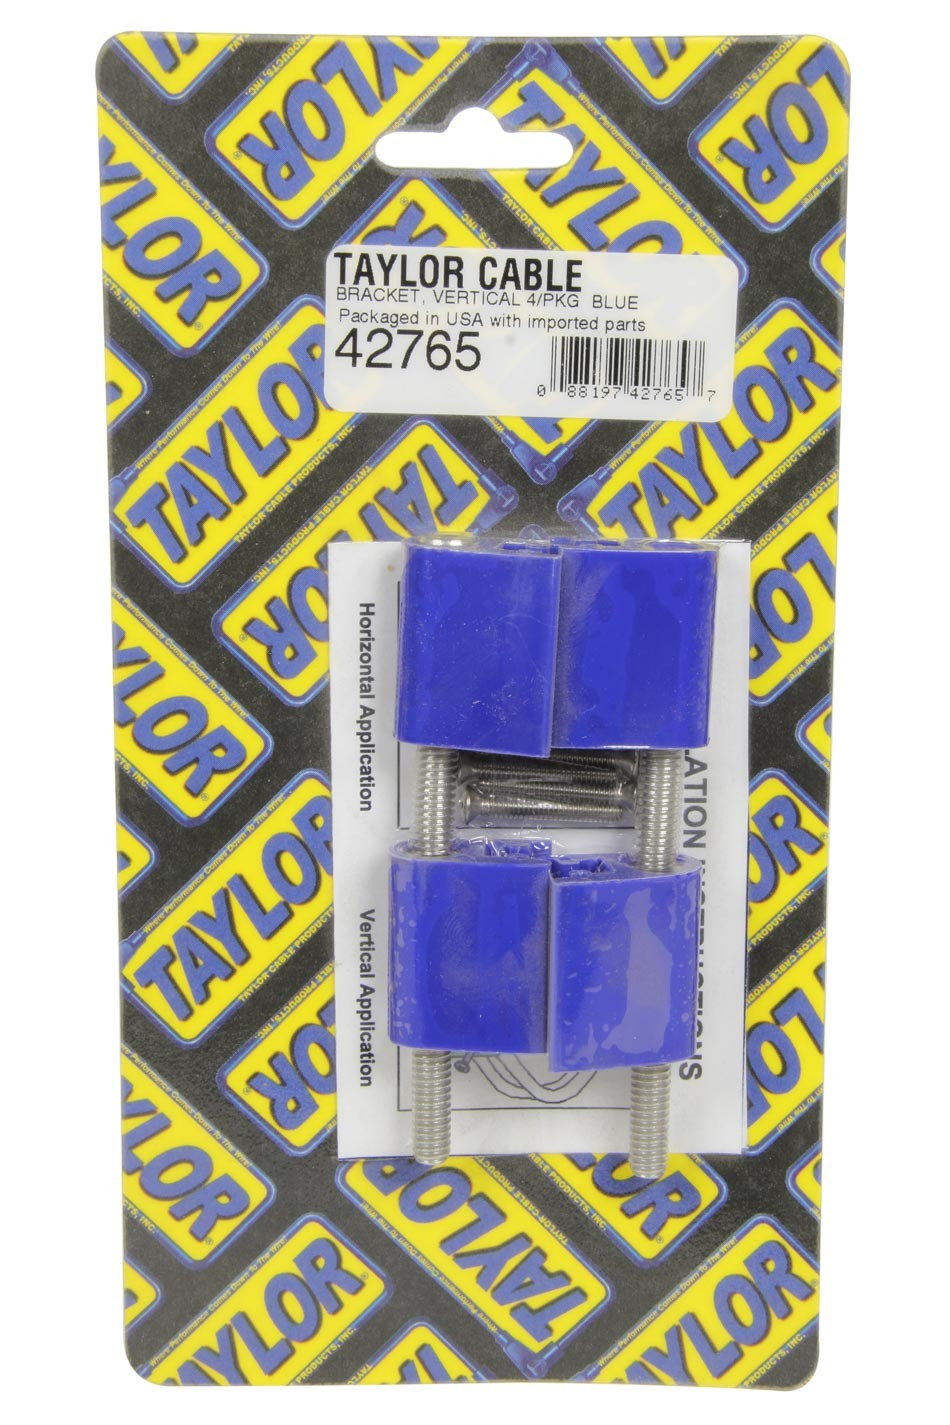 Taylor 42765 Wire Loom Bracket, Valve Cover Mount, Hardware Included, Vertical, Nylon, Blue, Mounts Clamp Style Separators, Set of 4